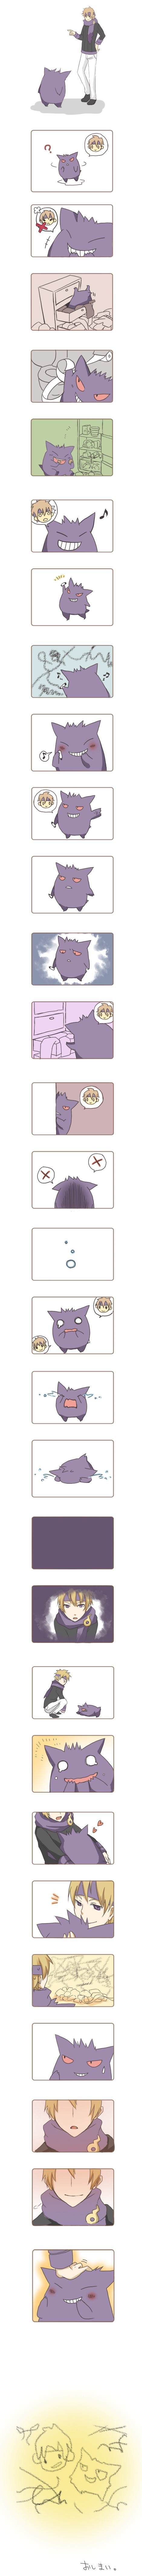 The story of a Gengar and his Pokémon Trainer.